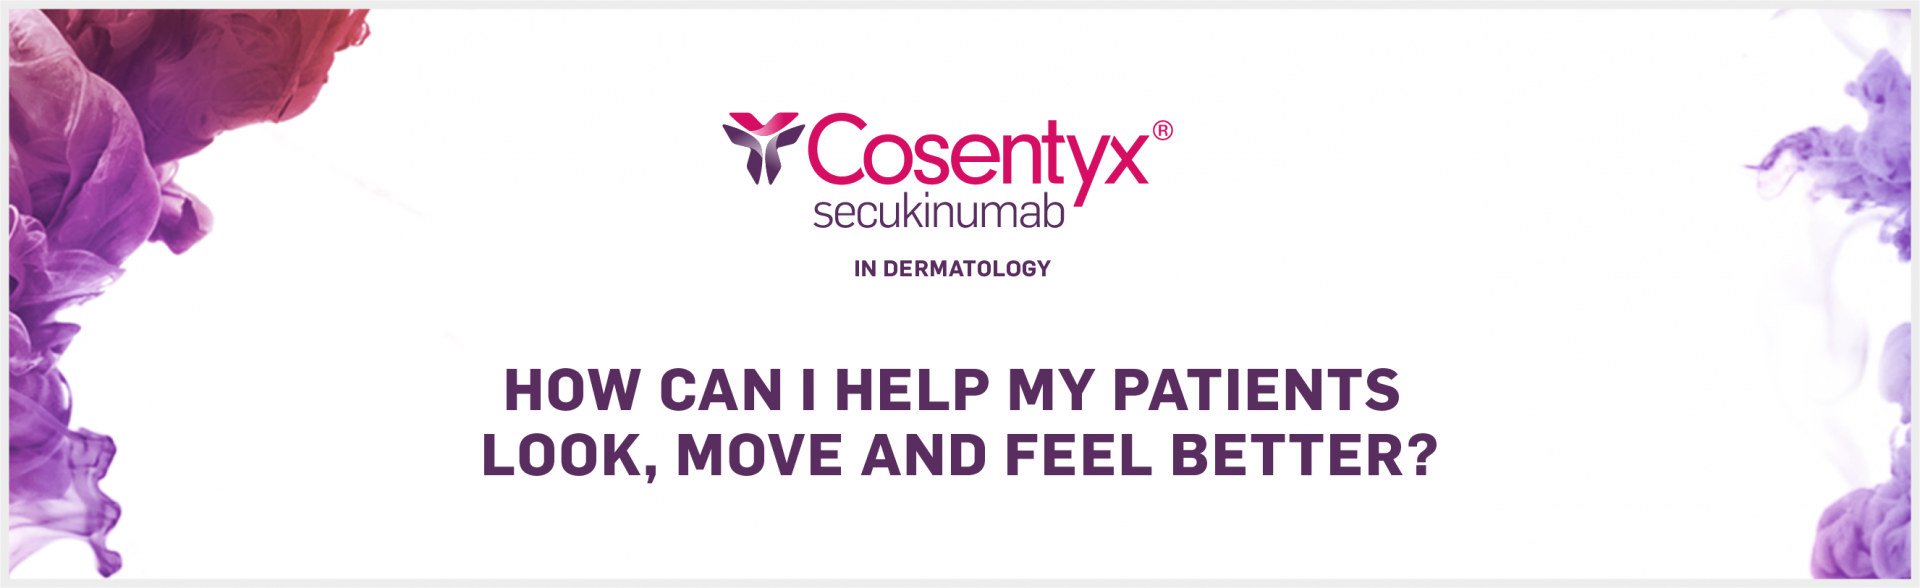 Top banner. Why choose Cosentyx for your patients with plaque psoriasis?